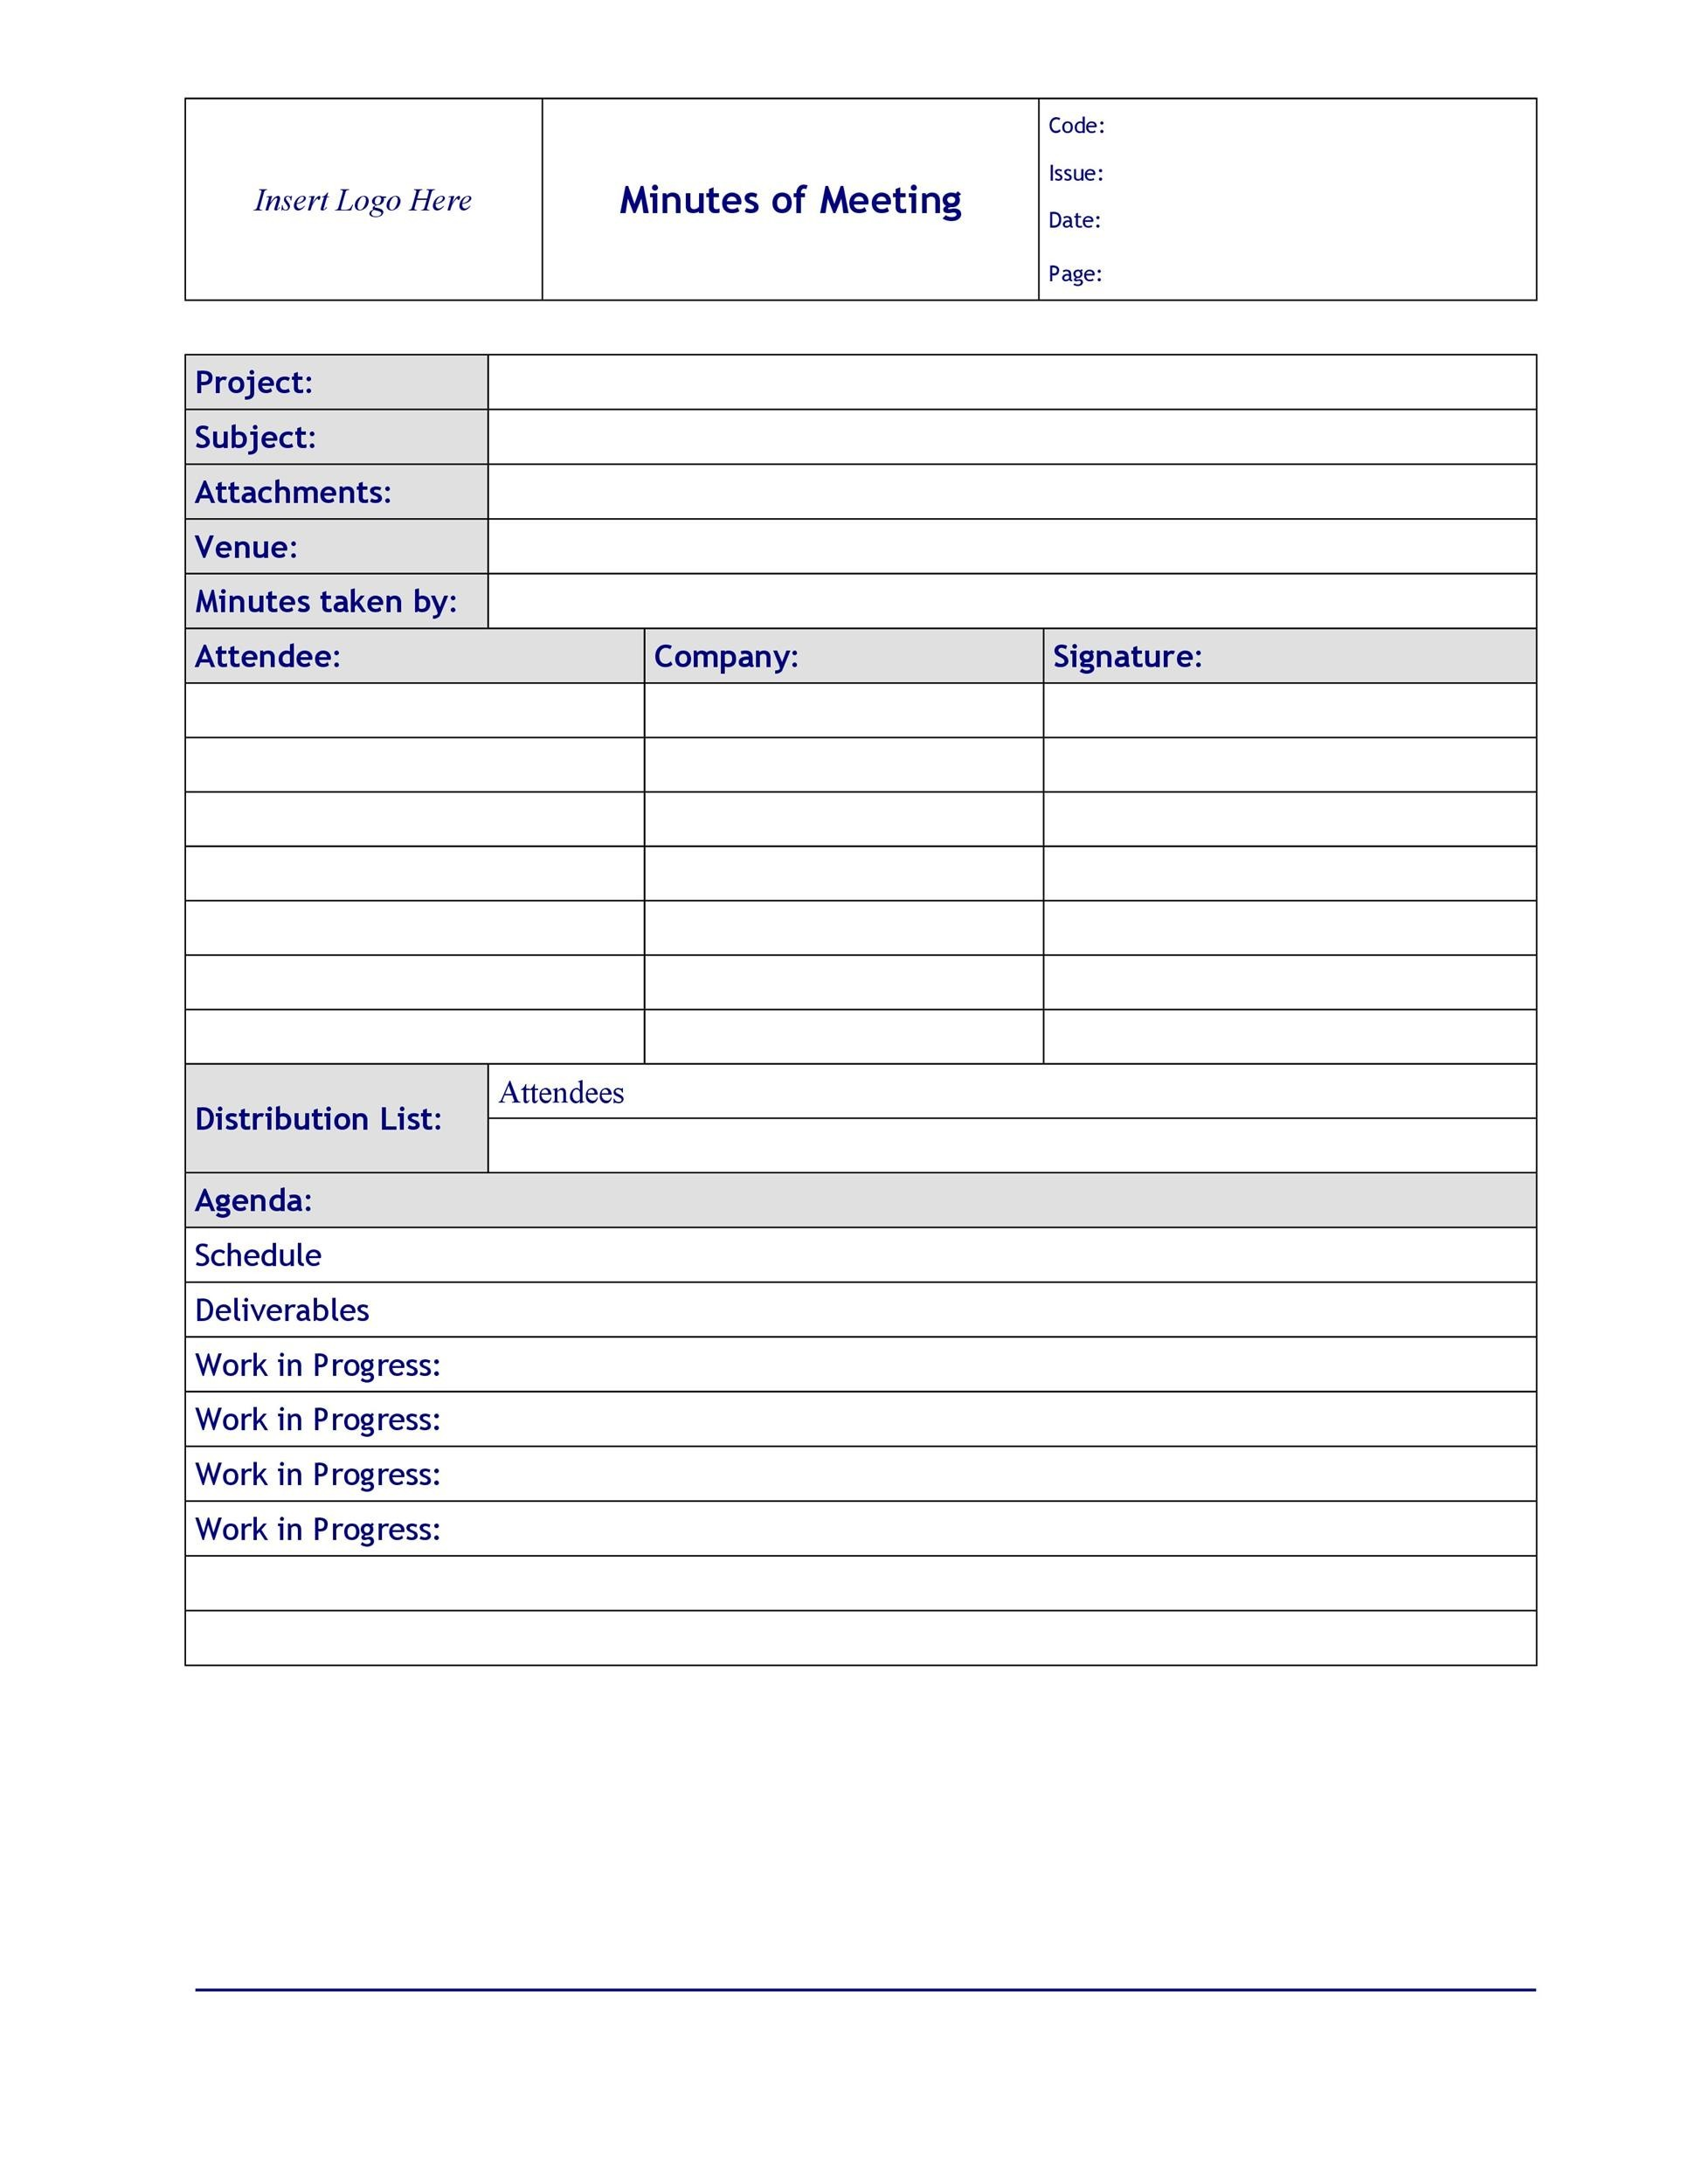 20 Handy Meeting Minutes Meeting Notes Templates – Attendees List Template